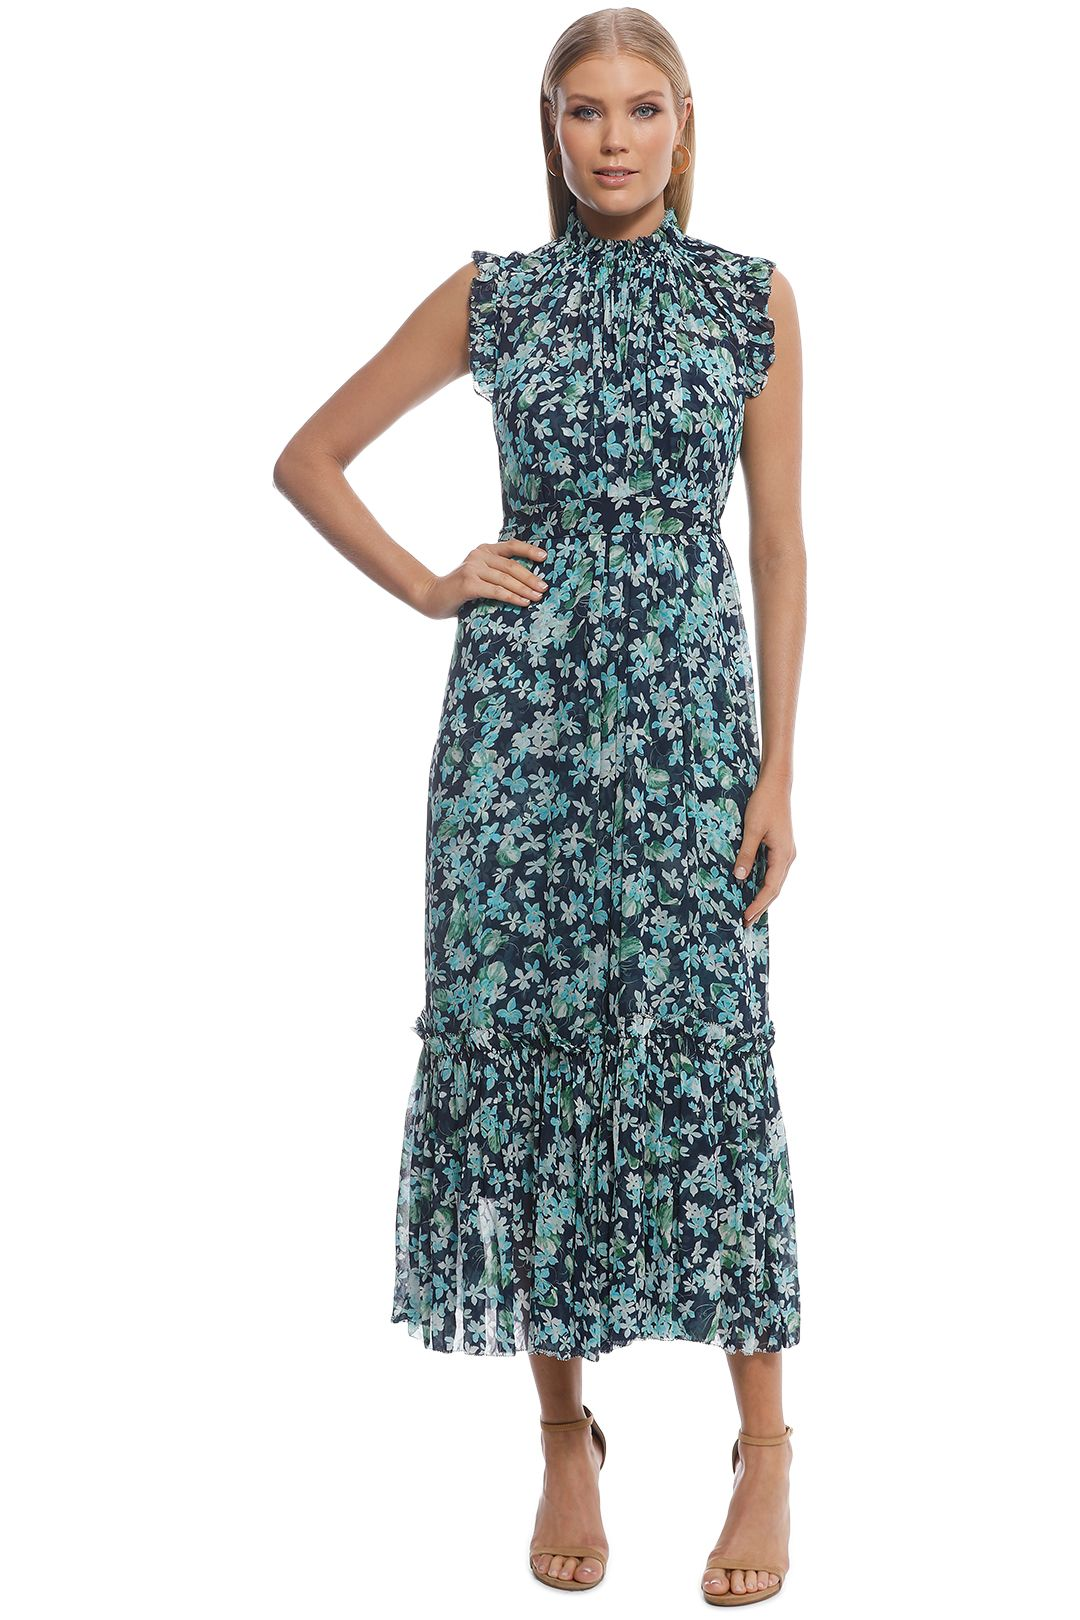 Zimmermann - Moncur Frill Dress - Blue - Front